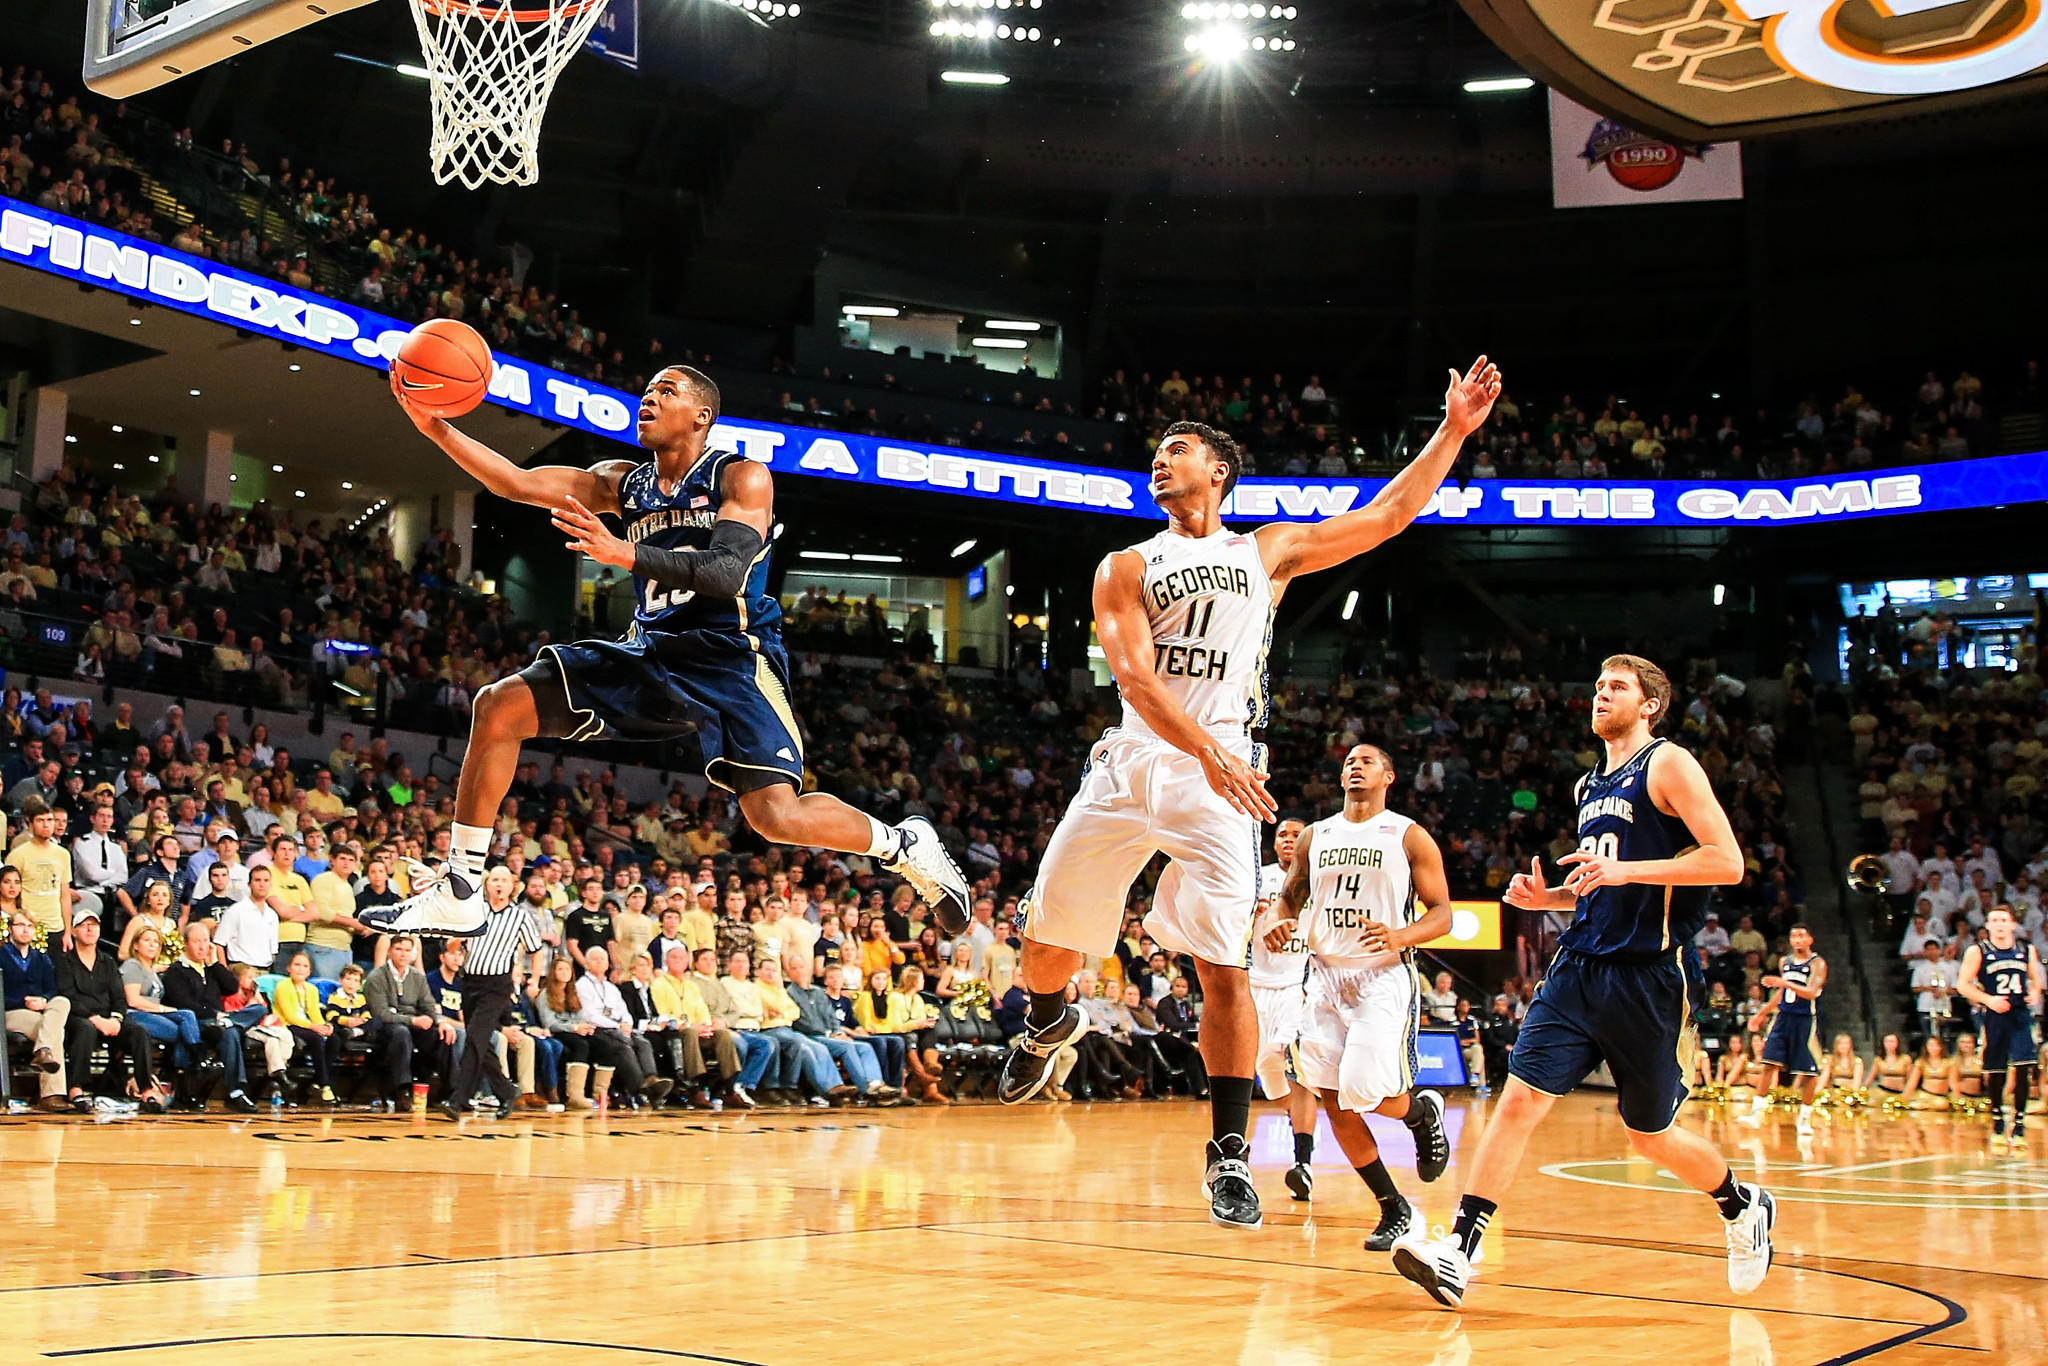 Notre Dame's Demetrius Jackson shoots past Georgia Tech's Chris Bolden in the first half at Hank McCamish Pavilion.